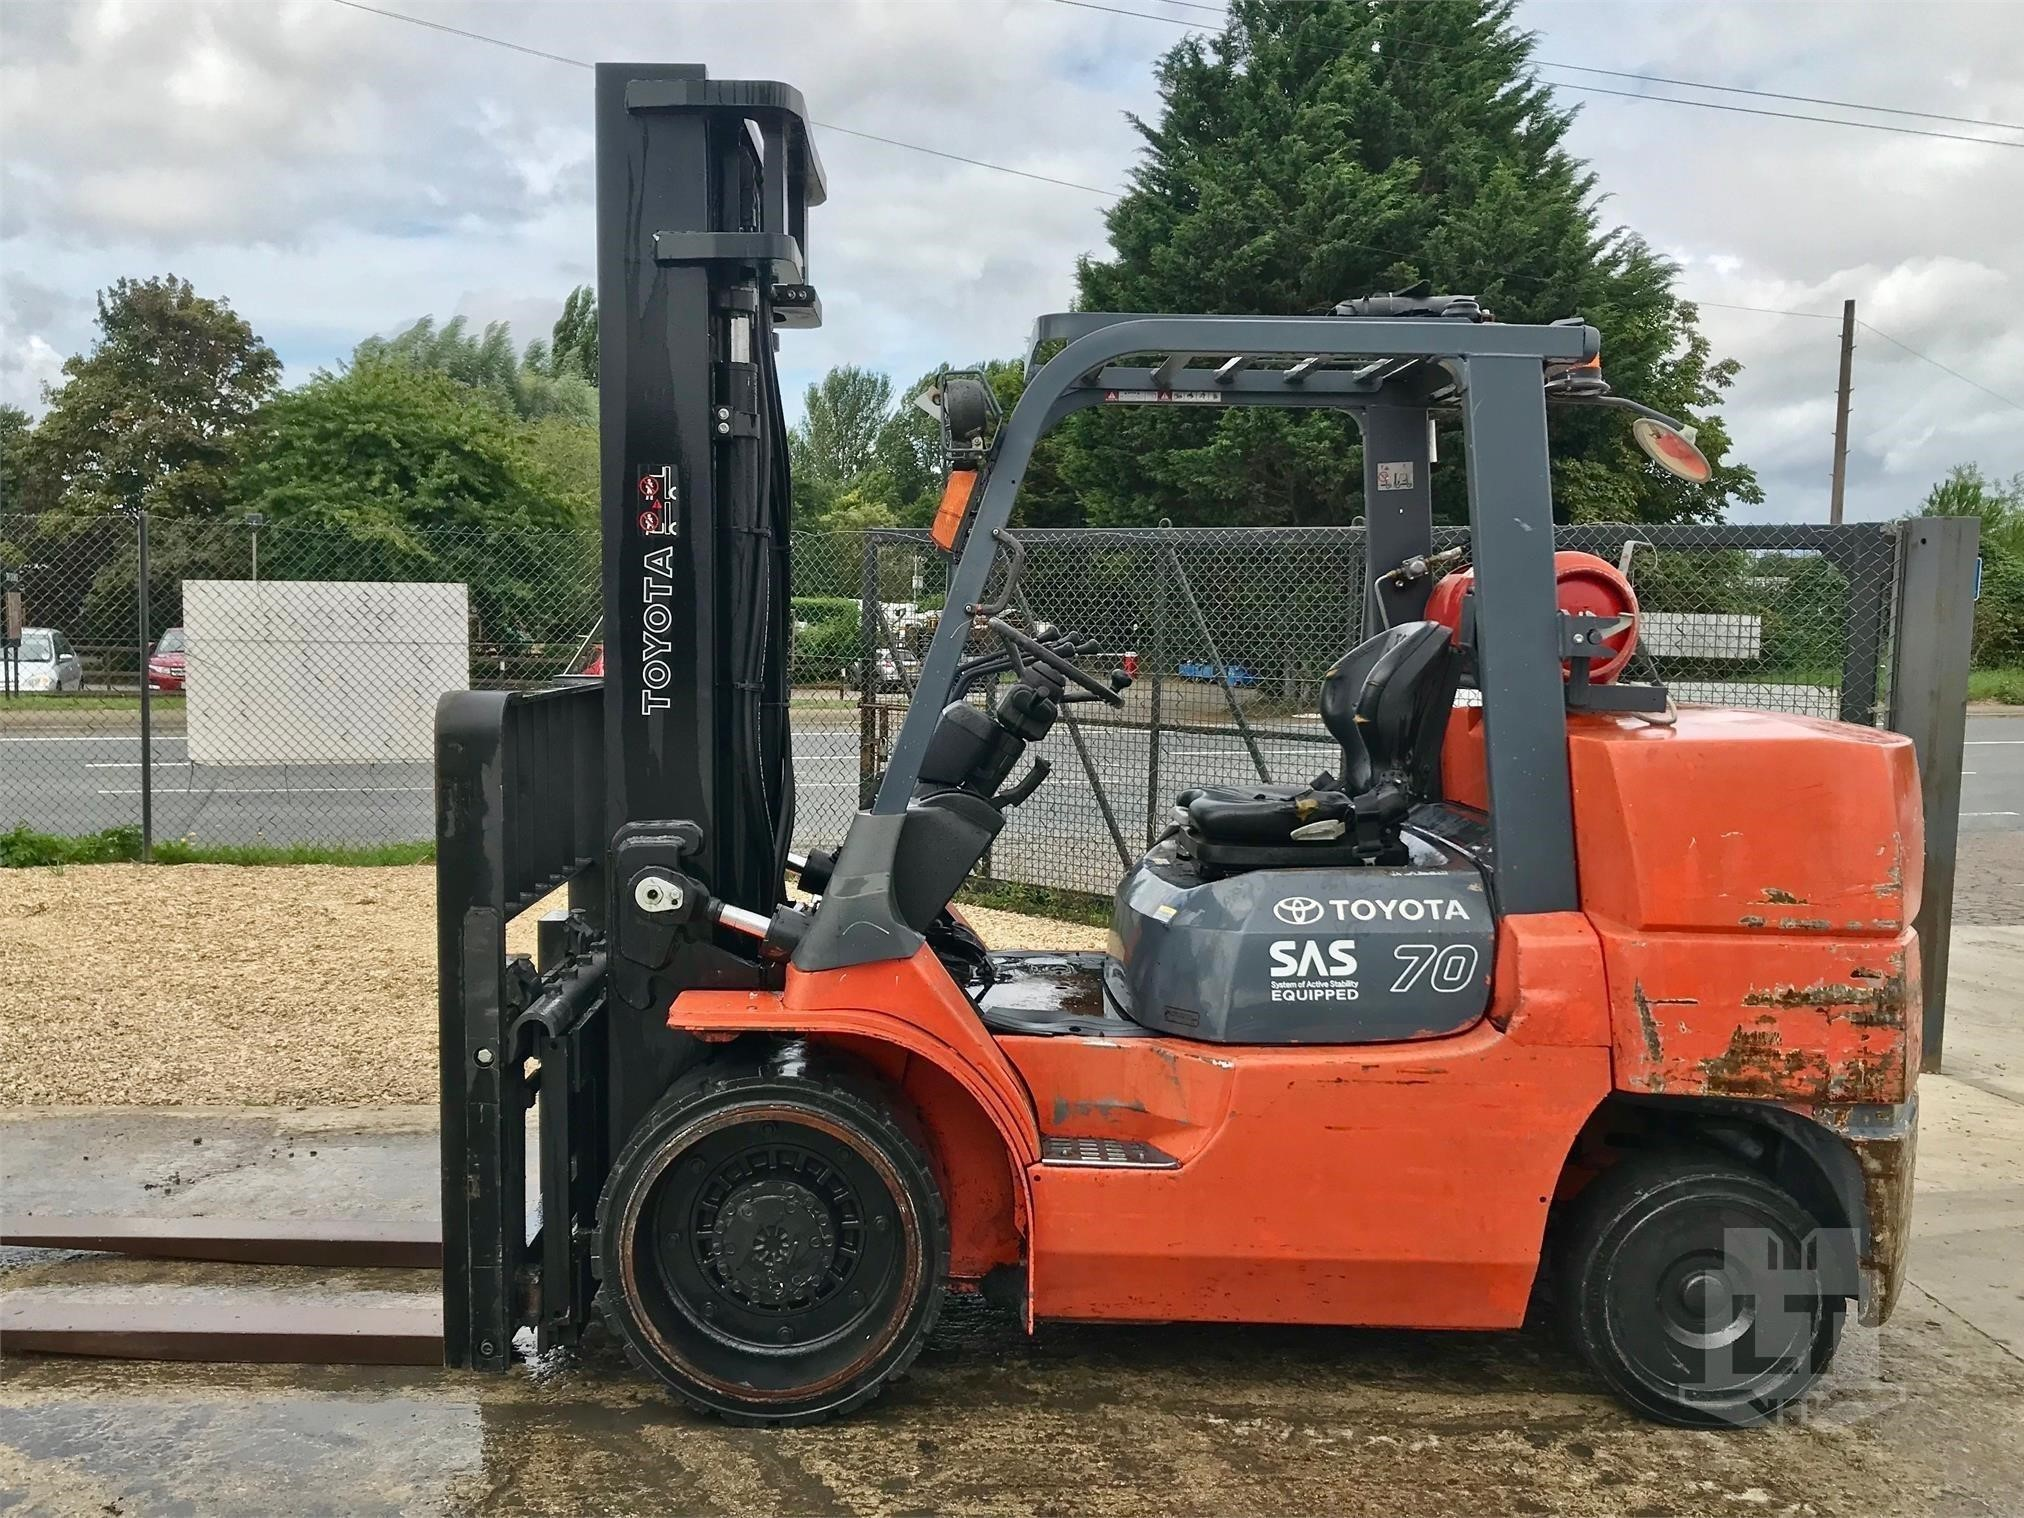 Forklifts For Sale 14828 Listings Liftstoday United Kingdom